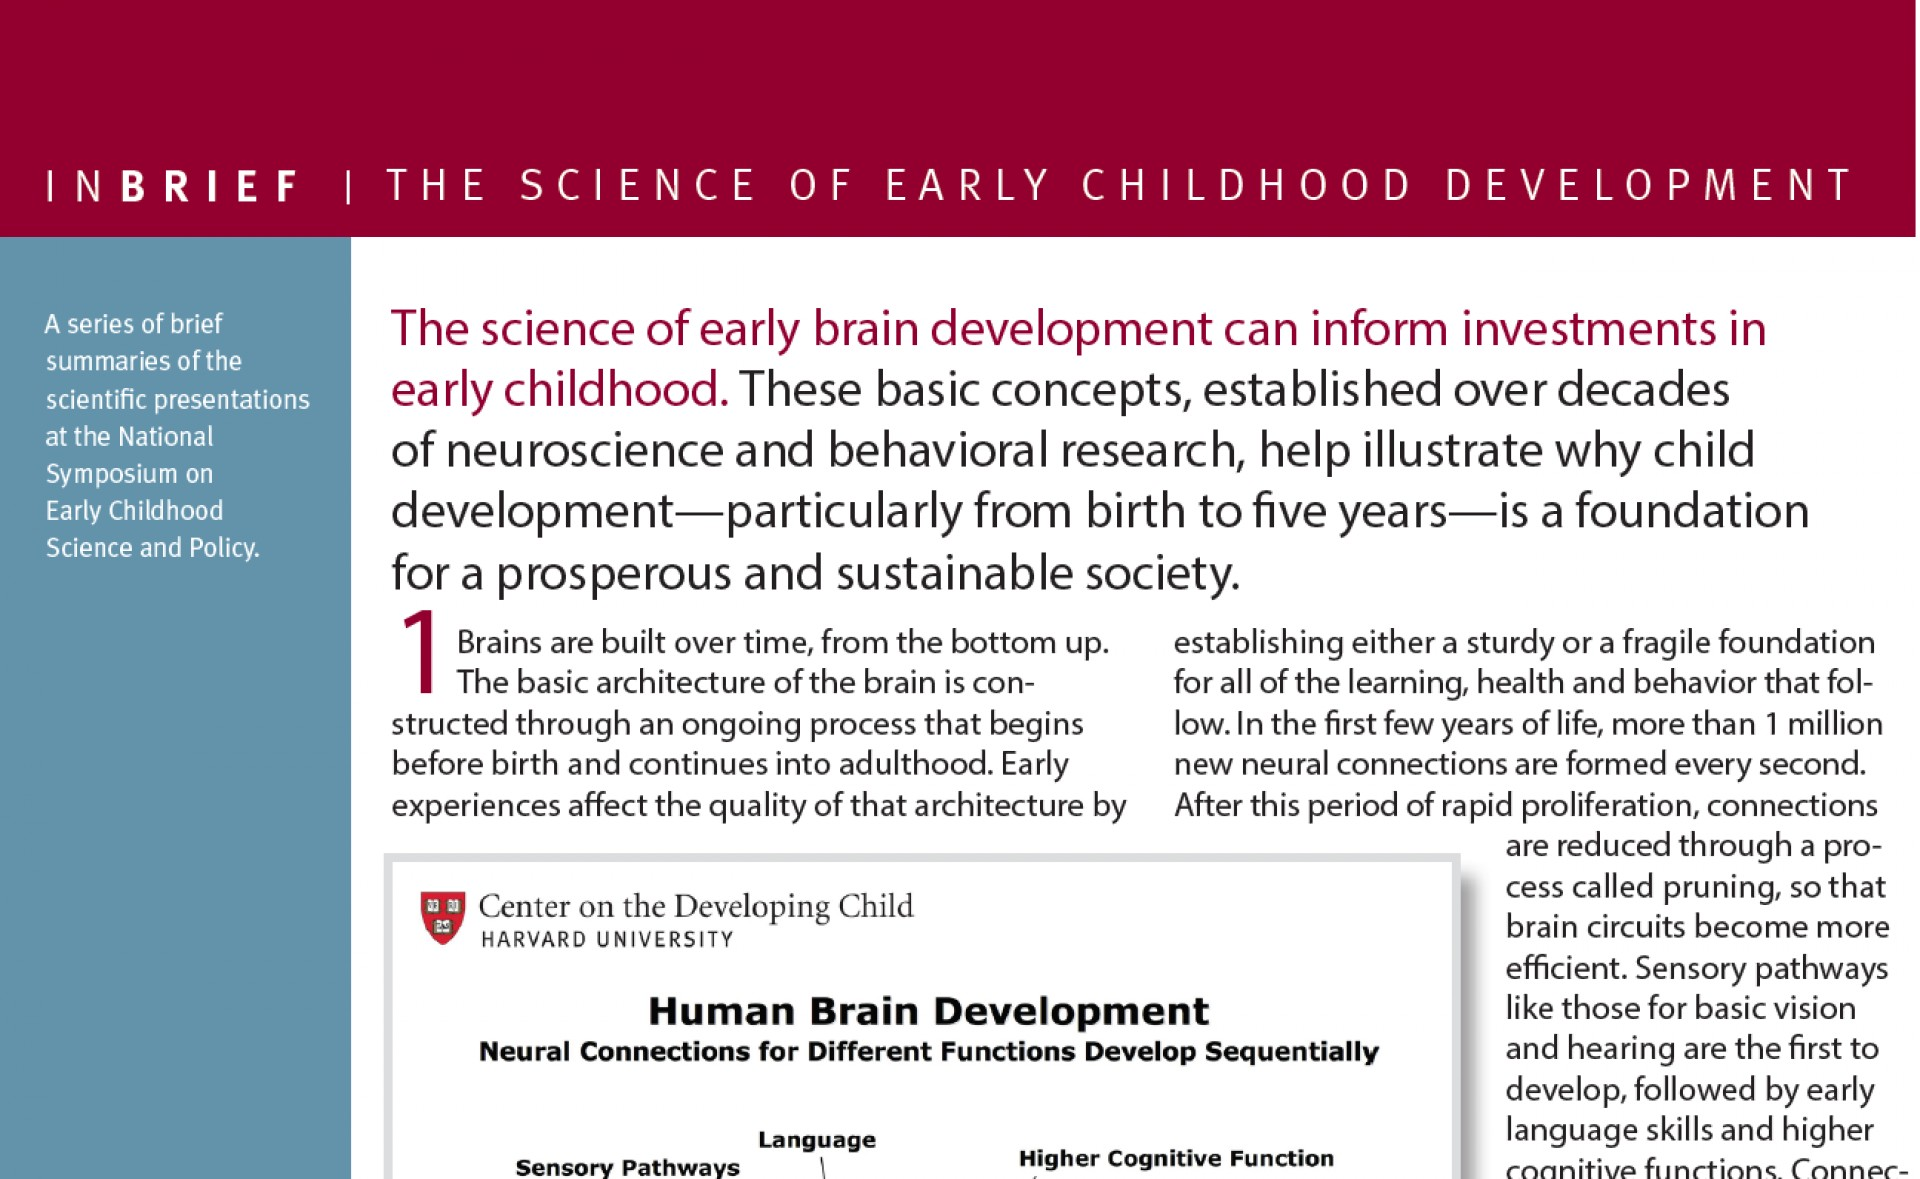 009 Research Paper Child Development Topics Screen Shot At Awesome Childhood Psychology Growth And 1920